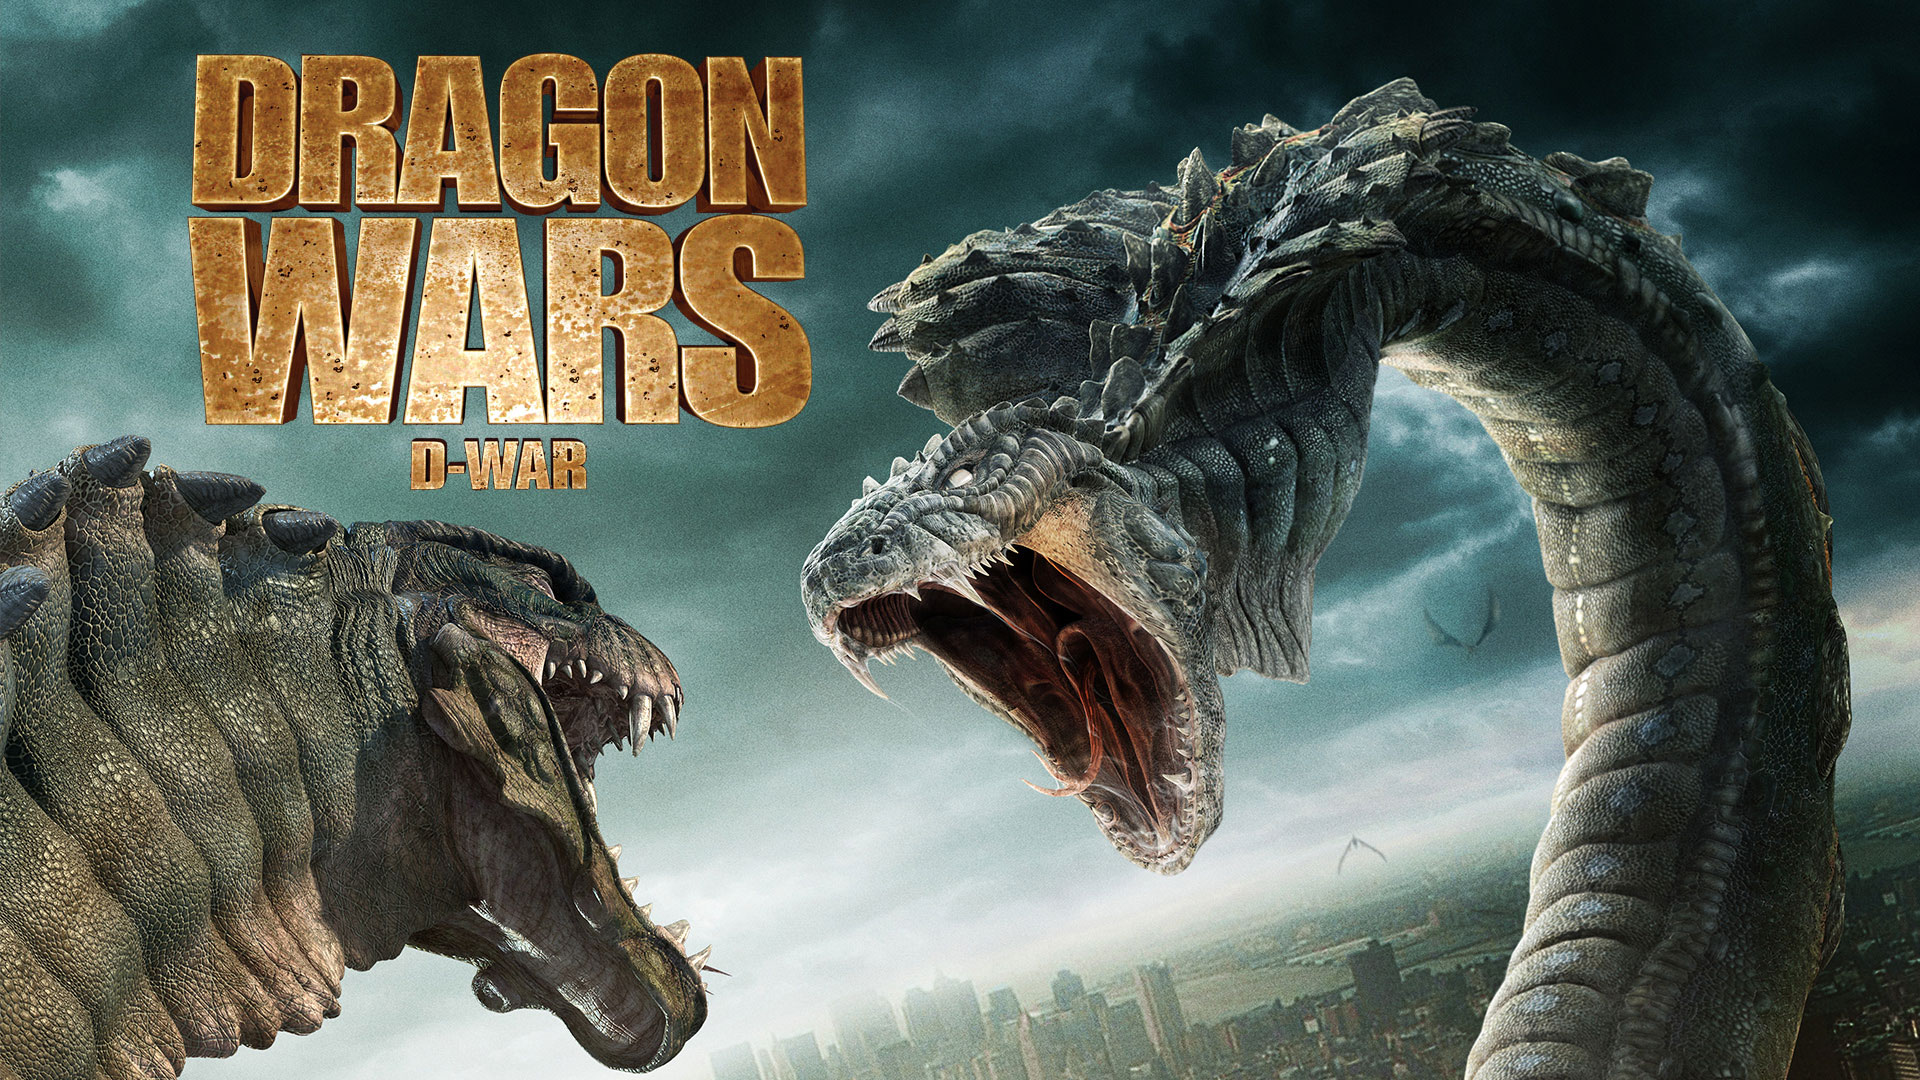 dragon wars sequel begins shooting this summer we�re not